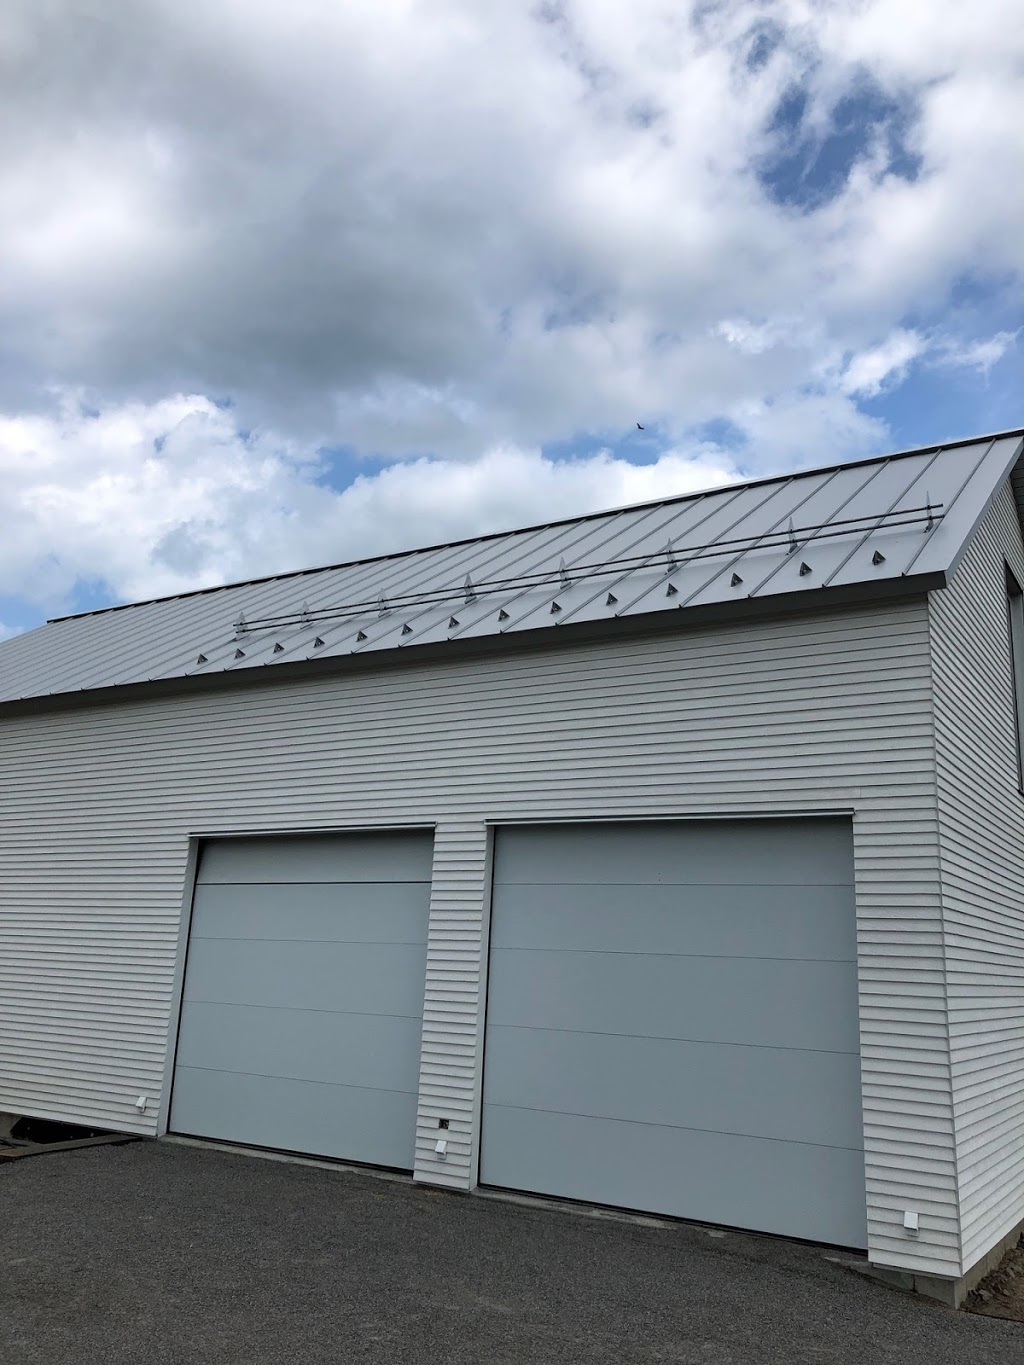 Toiture dacier - Groupe CO-REC | roofing contractor | 661 Boulevard Jean-Paul-Vincent, Longueuil, QC J4G 1R3, Canada | 4388628353 OR +1 438-862-8353